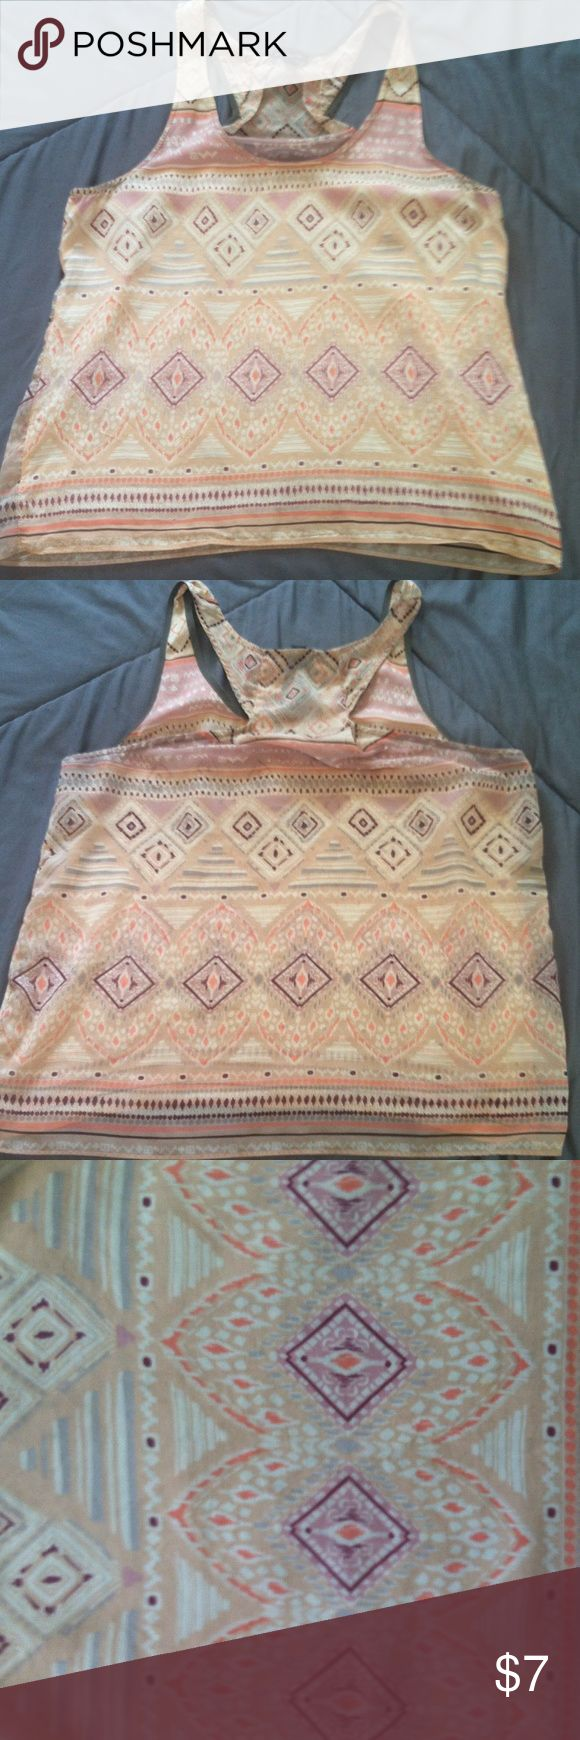 American Eagle Tank beautiful shirt great condition worn a few times American Eagle Outfitters Tops Tank Tops